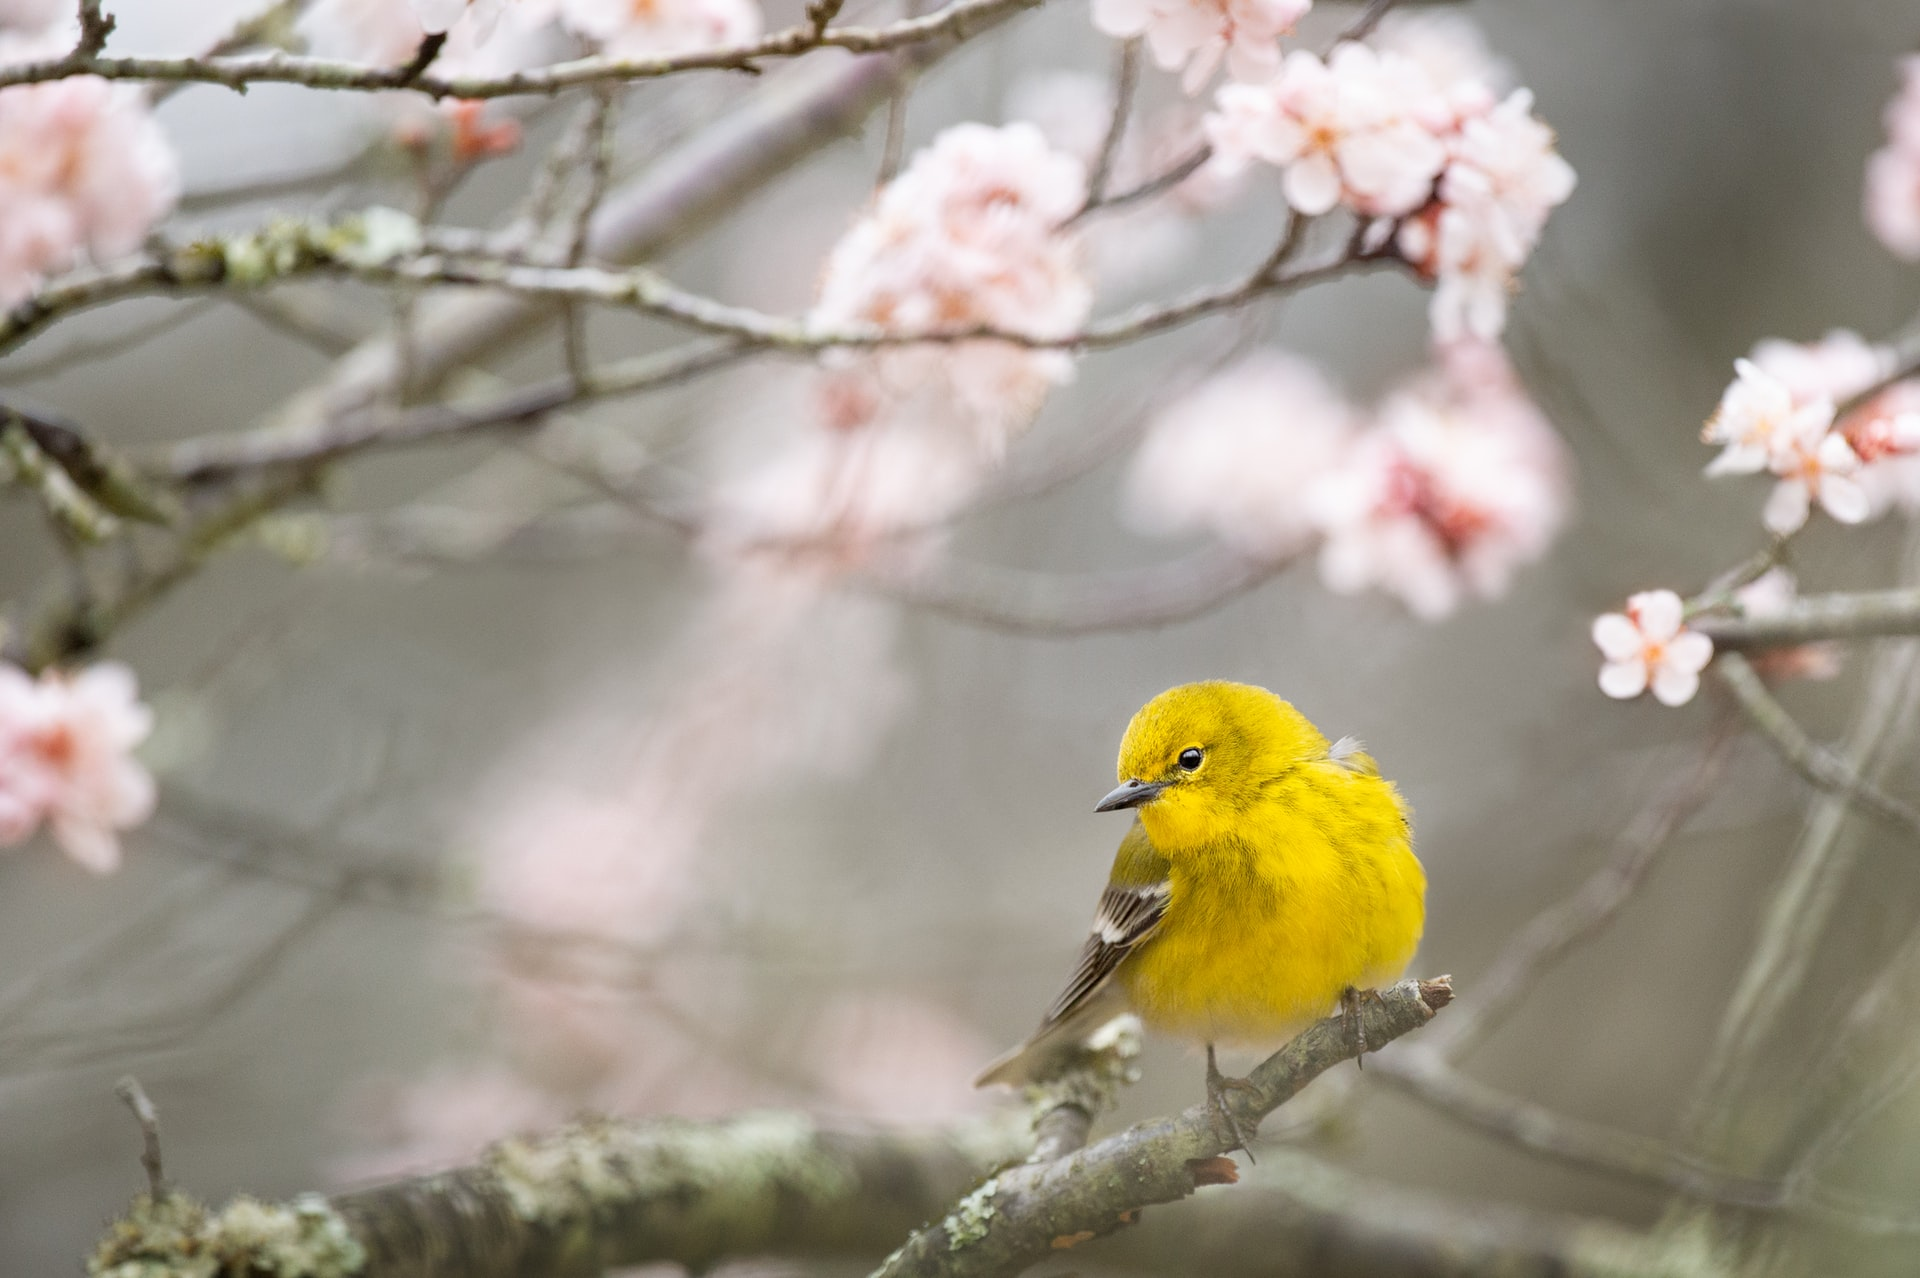 image of tree with pink blossoms, with a yellow pine warbler bird perched on a branch. Tag: april 2021 self-care